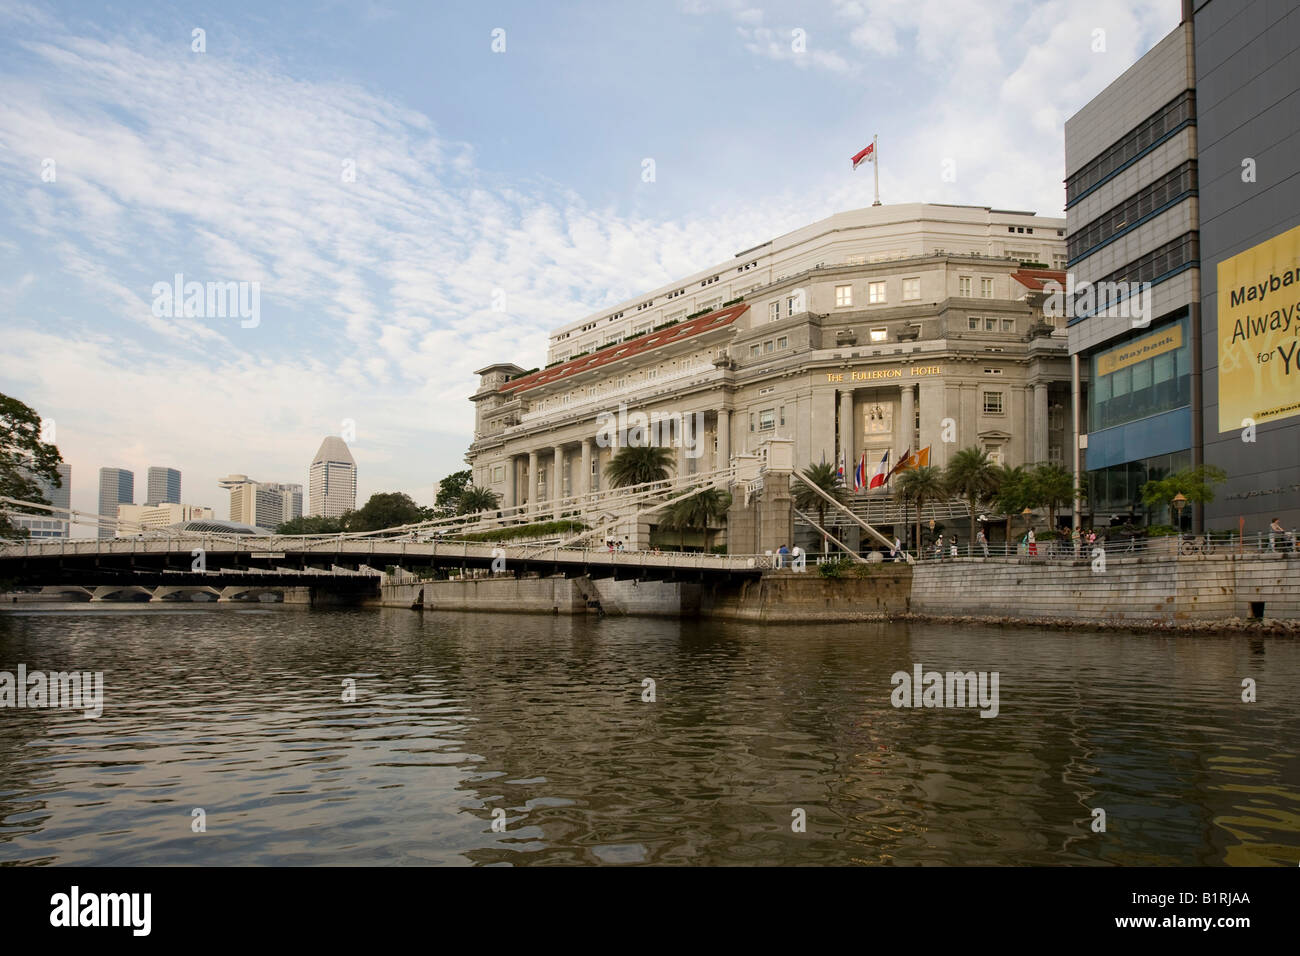 Fullerton Hotel and Anderson Bridge on the Singapore River, Singapore, Southeast Asia - Stock Image